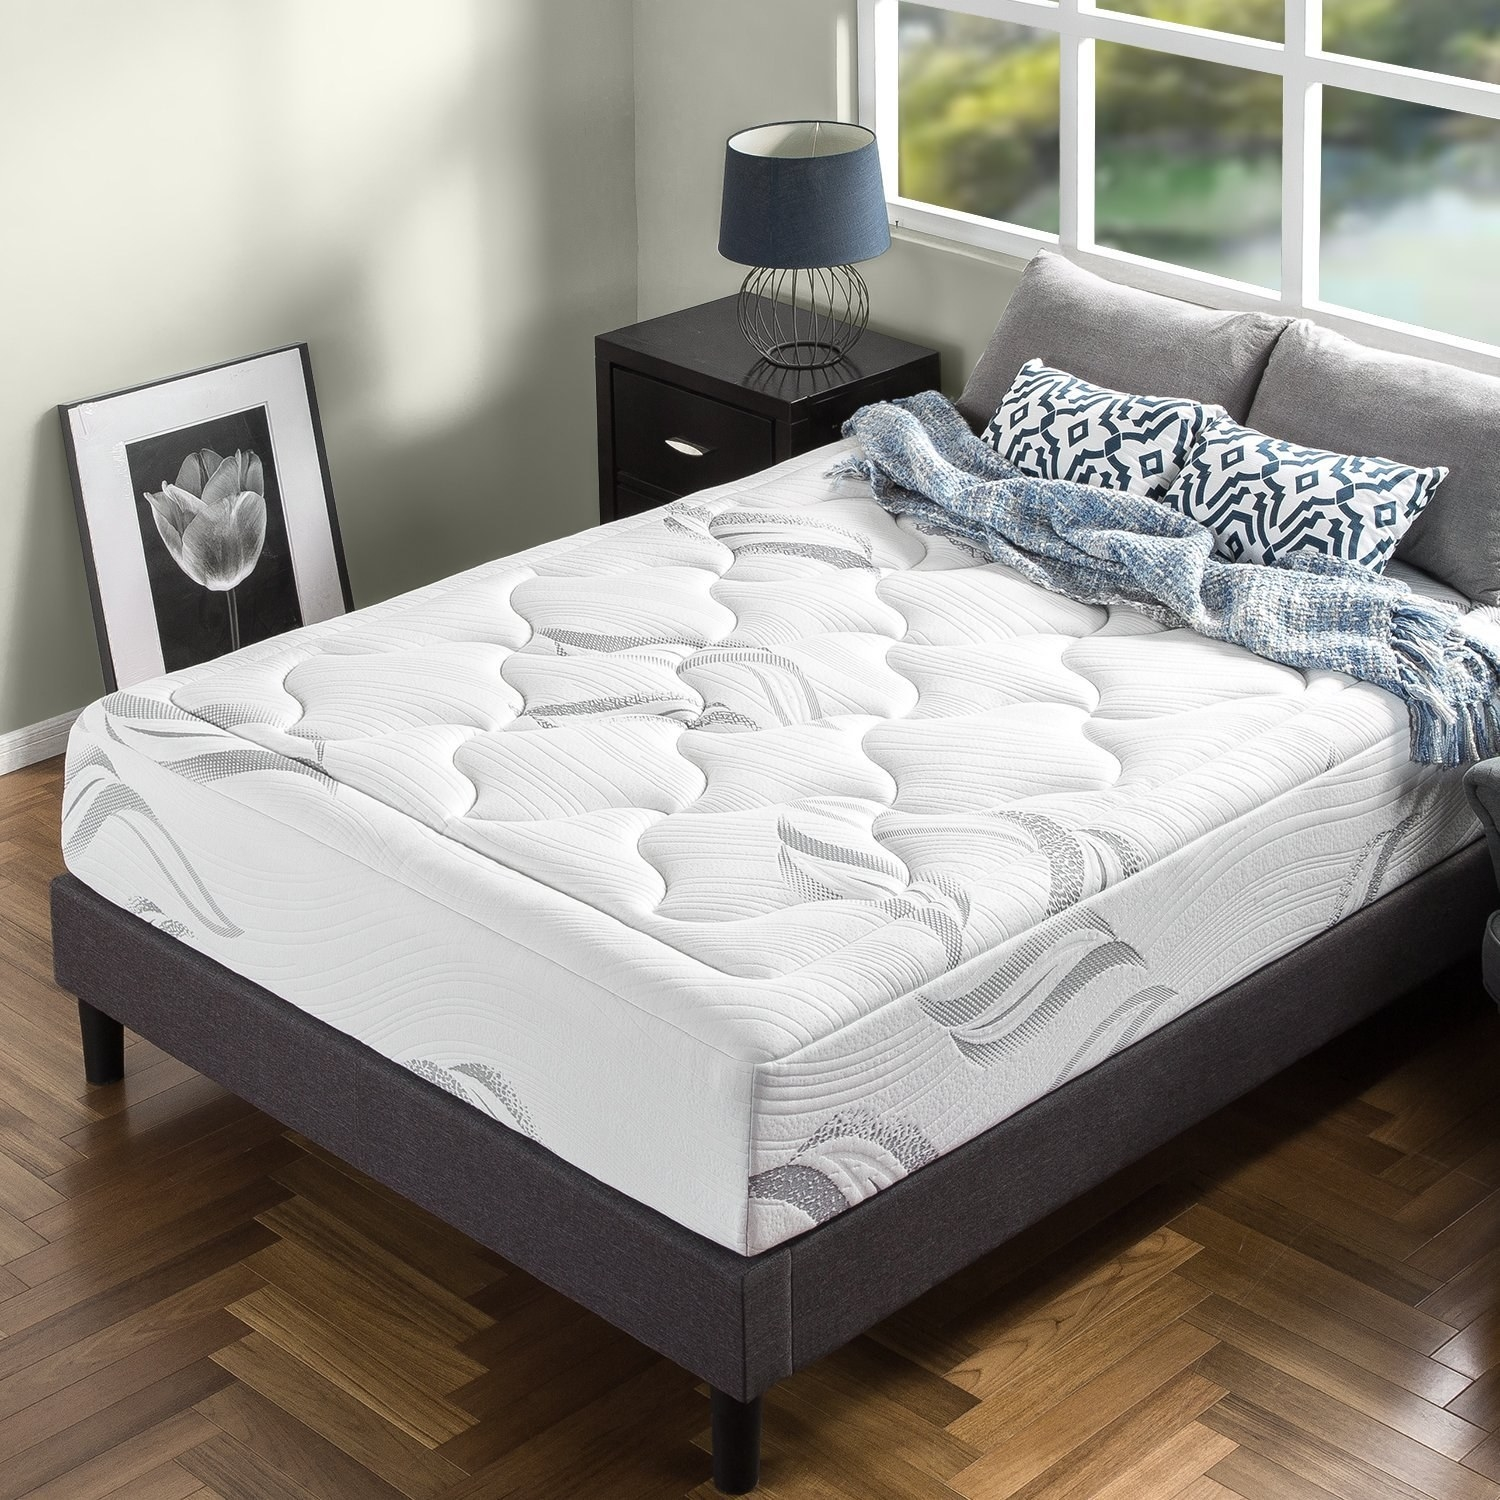 2. This Green Teau2013infused Mattress Meant To Eliminate Typical Mattress  Odors And Feel As Plush As The Clouds!